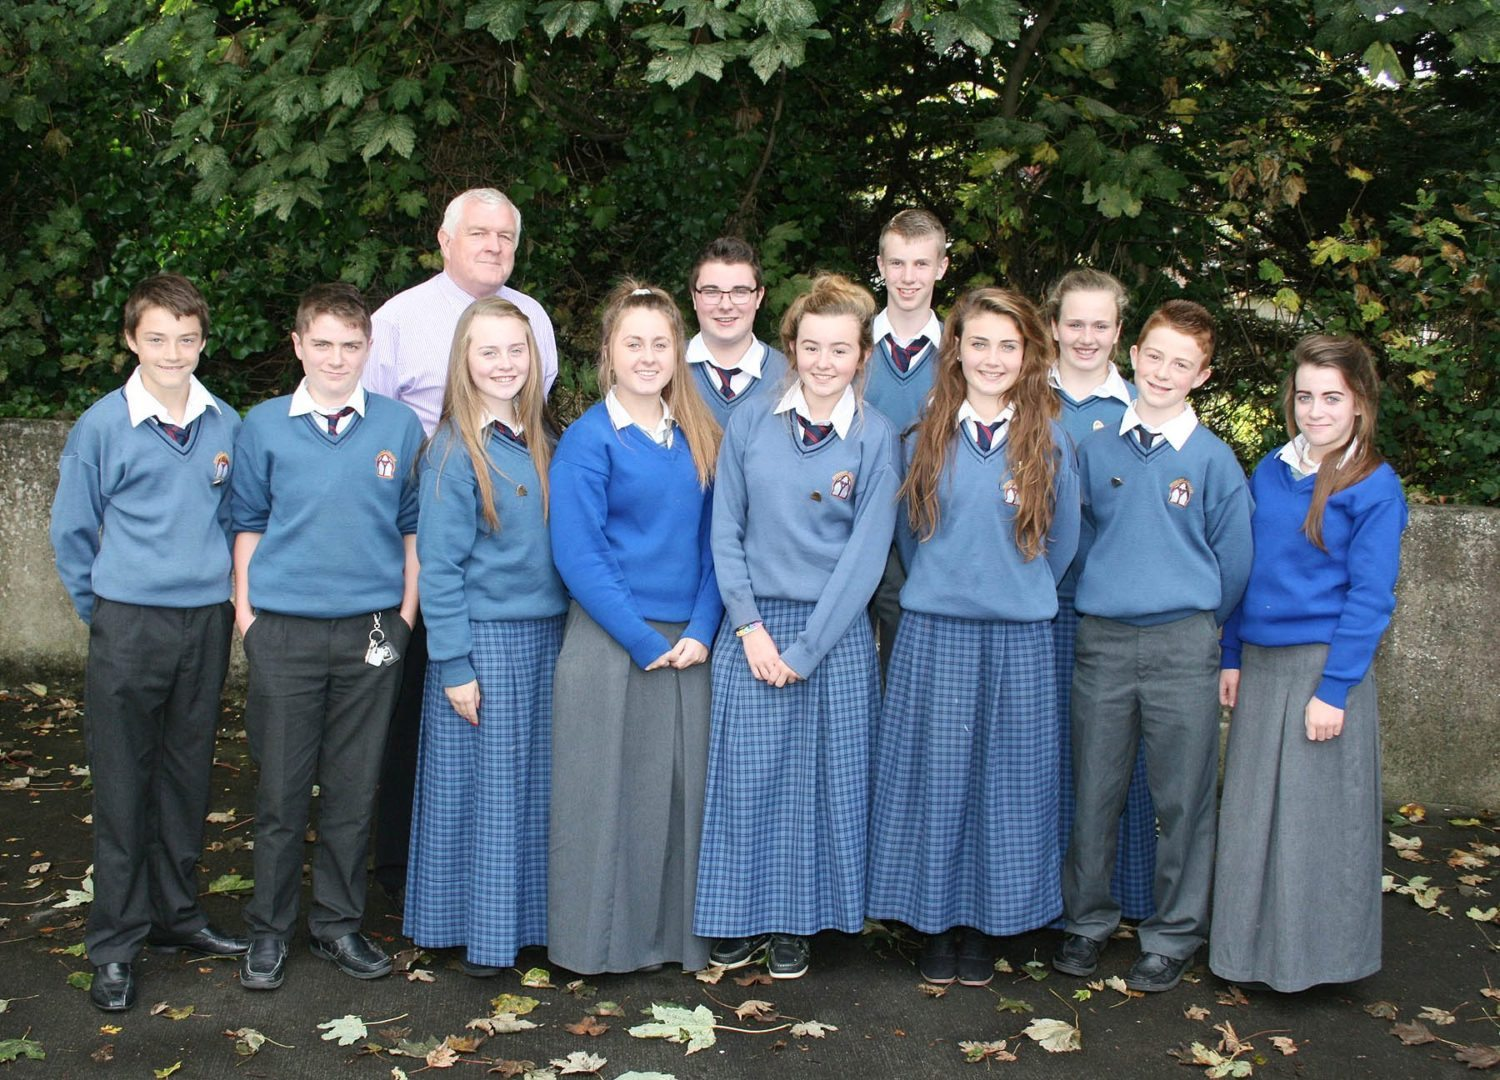 Students from Desmond College and the Gaelcholaiste Ui Chonba who are on the Student Council 2014-2015